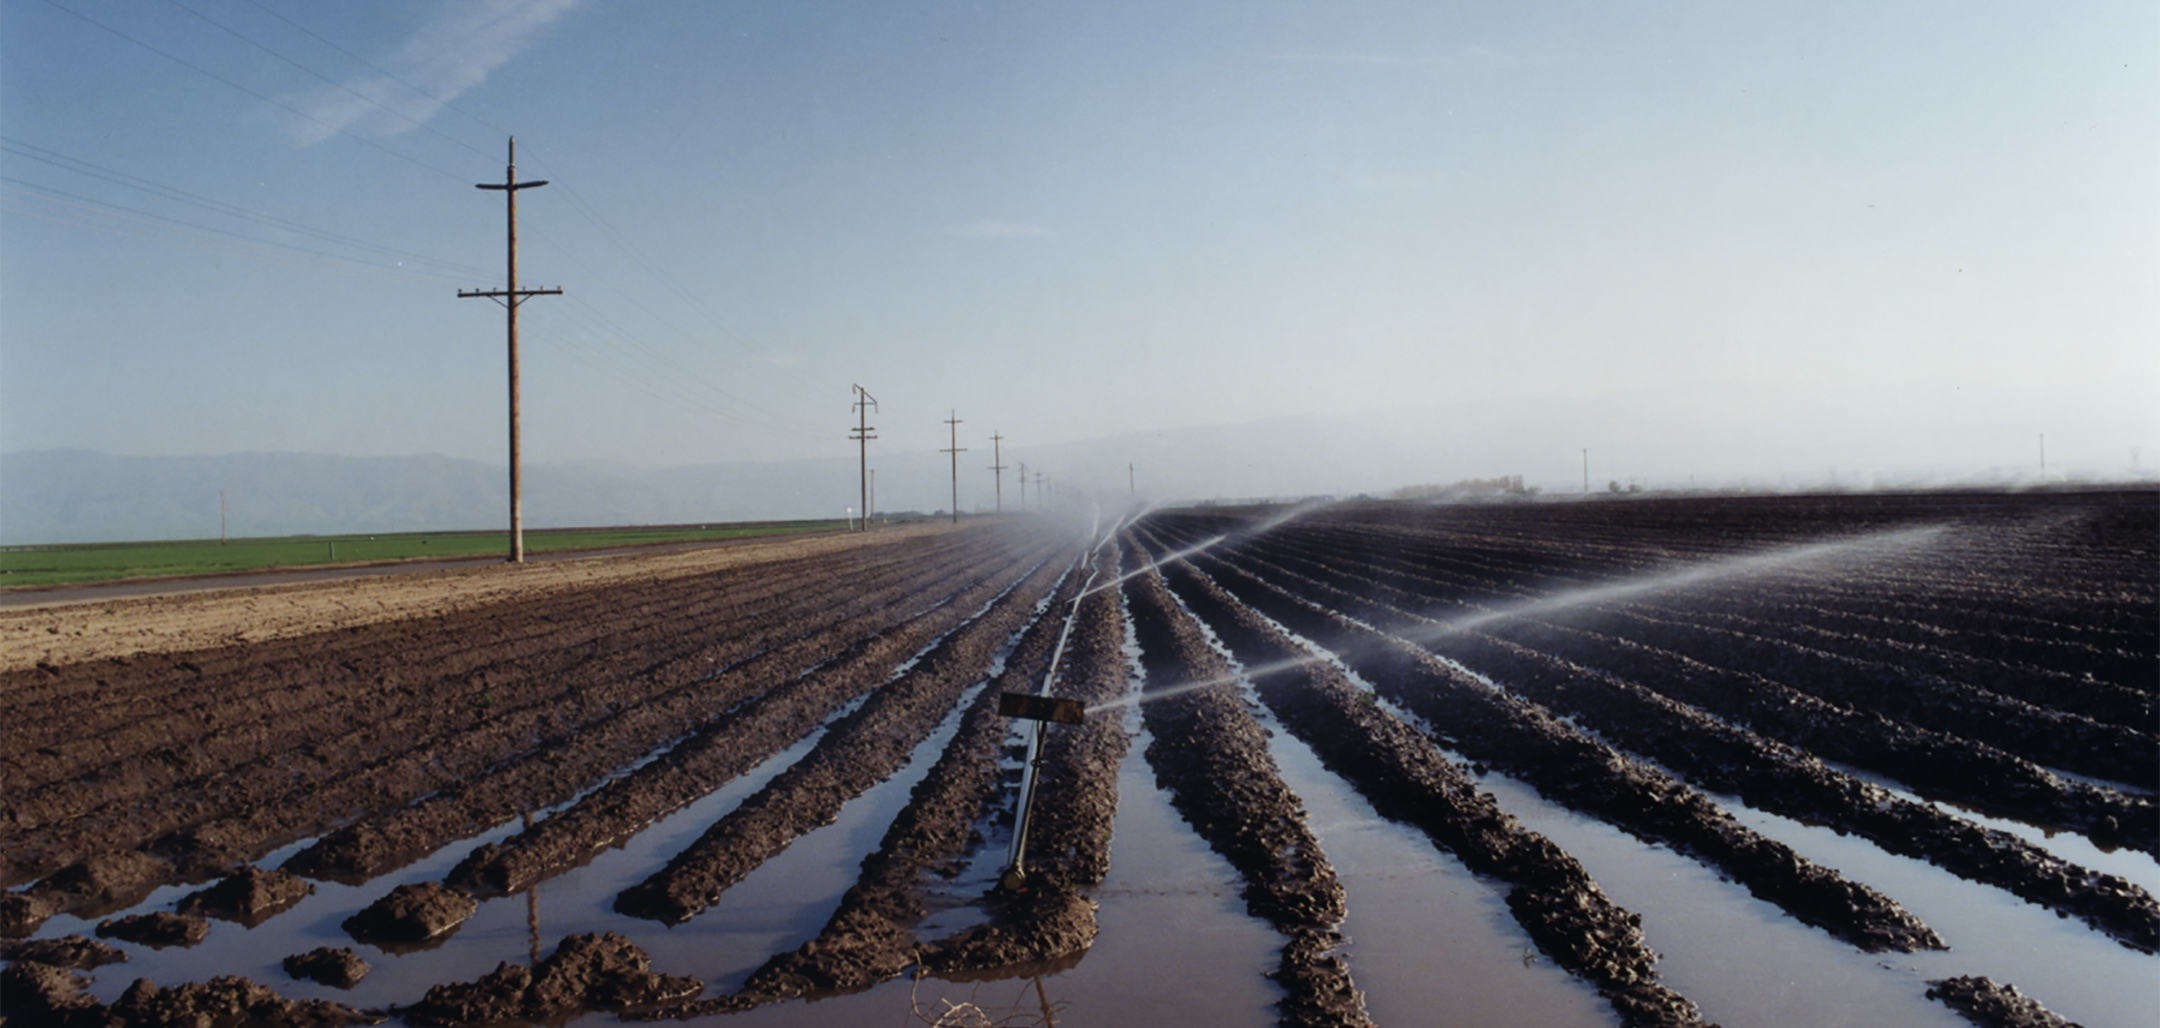 Irrigation channels and sprinklers on an empty farm field. Still from El Valley Centro (1999)